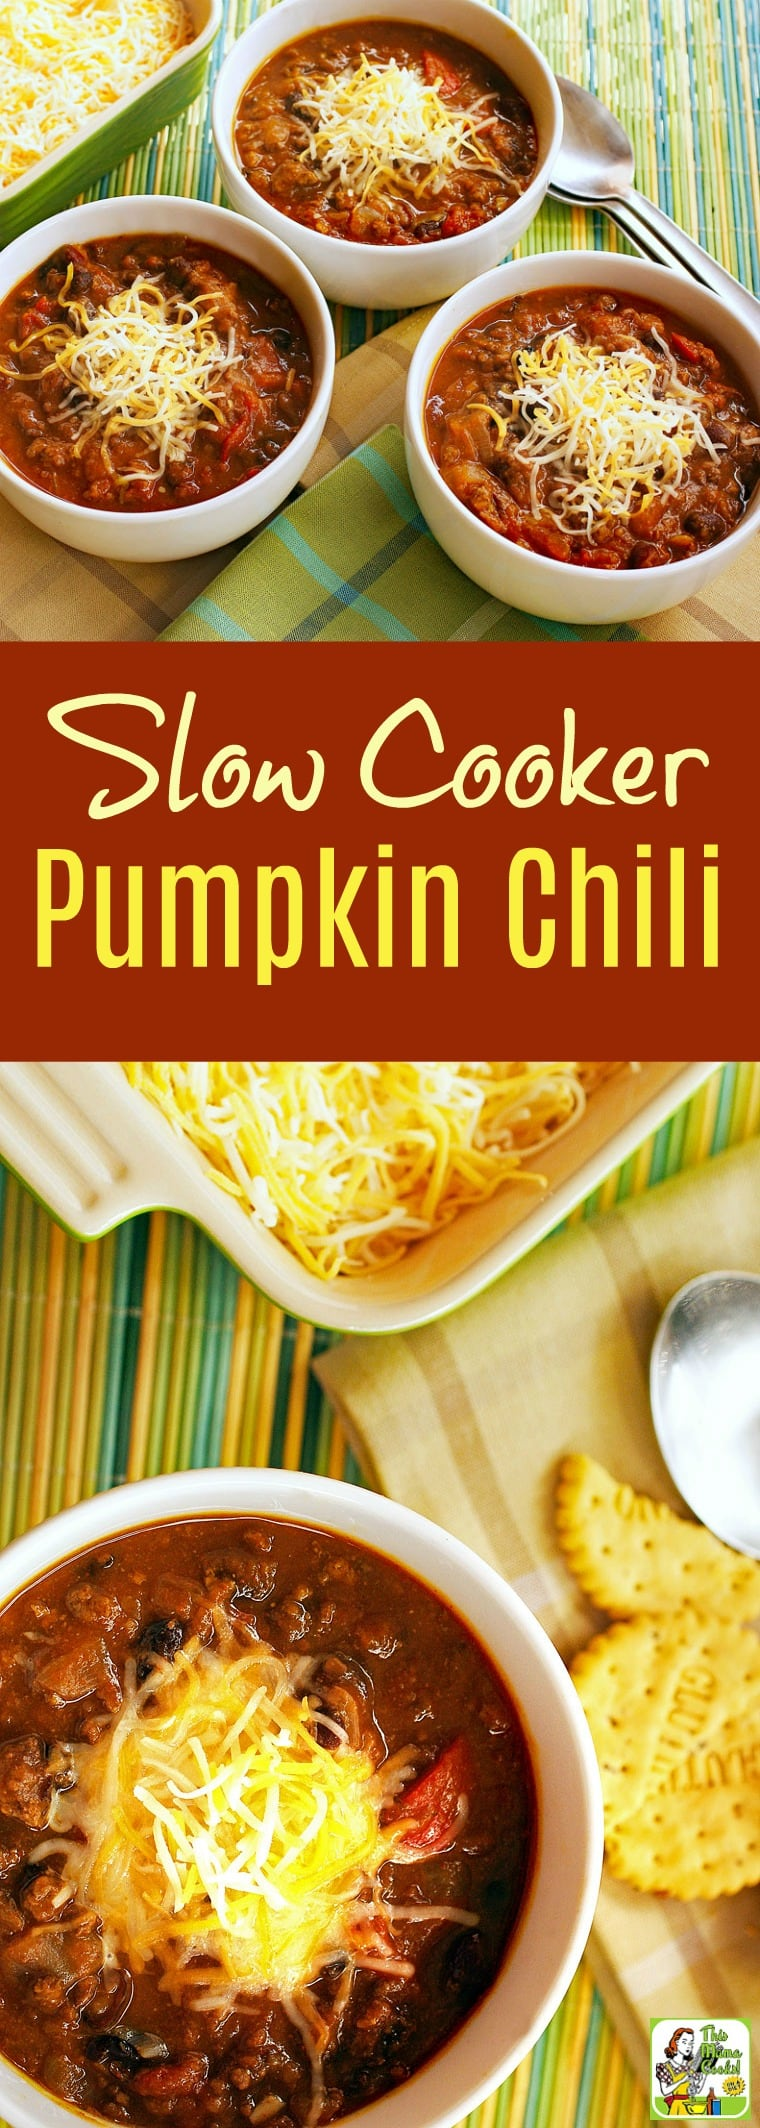 Looking for healthy slow cooker chili recipes? Try this slow cooker pumpkin chili recipe! Easy to make, naturally gluten-free and healthy! #recipe #easy #recipeoftheday #healthyrecipes #glutenfree #easyrecipes #slowcooker #crockpot #dinner #easydinner #pumpkinrecipe #pumpkin #chili #beans #turkey #recipe #easy #recipeoftheday #healthyrecipes #easyrecipes